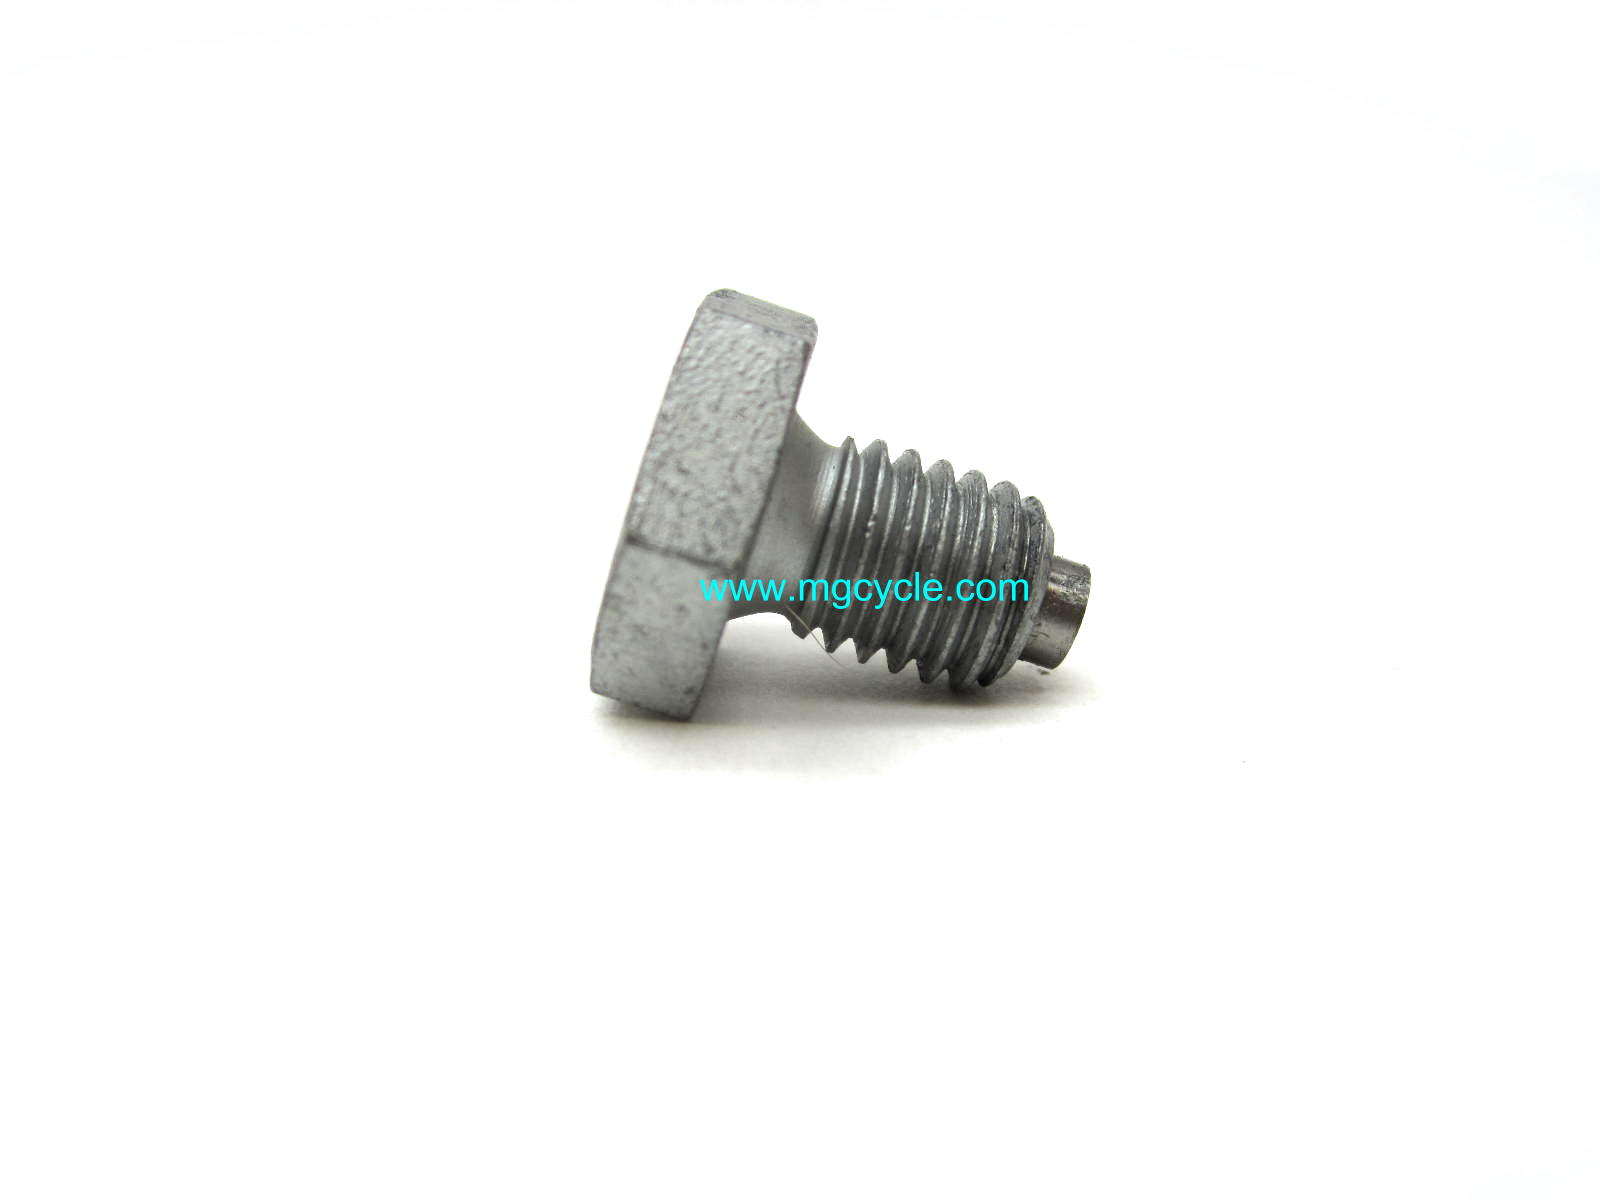 Magnetic drain plug, 10mm, engine, transmission, rear drive